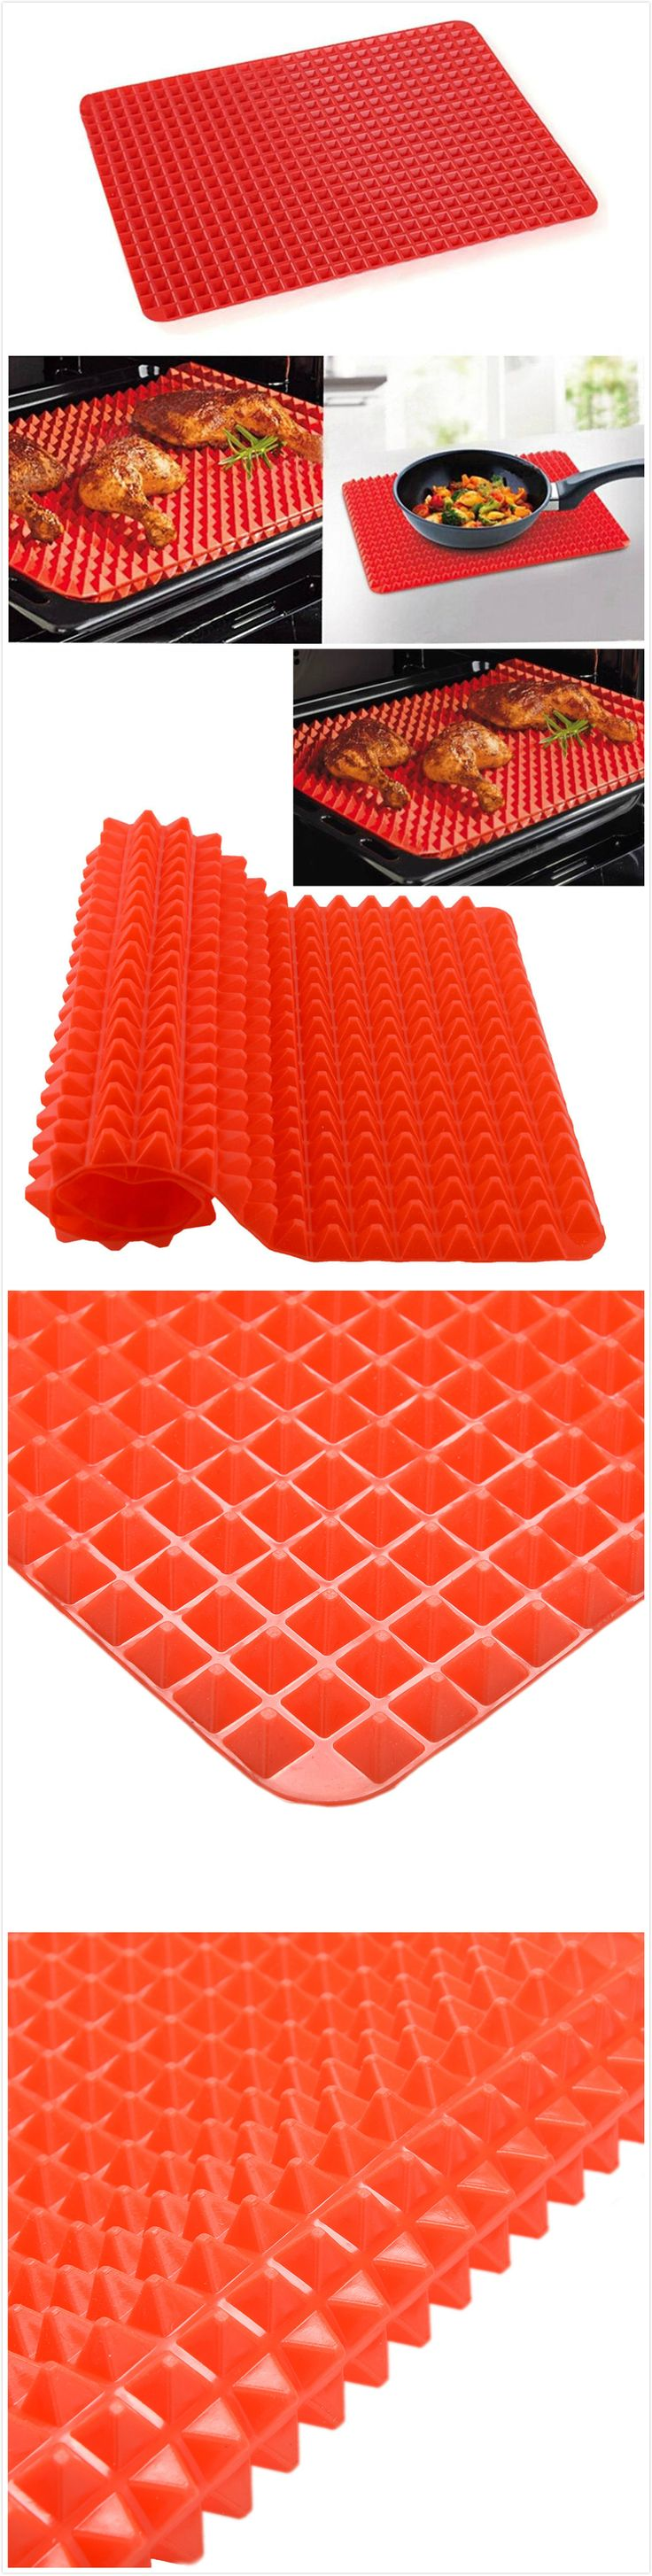 1 Piece Red Pyramid Bakeware Pan Nonstick Silicone Baking Mats Pads Moulds Cooking Mat Oven Baking Tray Sheet Kitchen Tools (Size: 39cm by 27cm by 1cm, Color: Red)